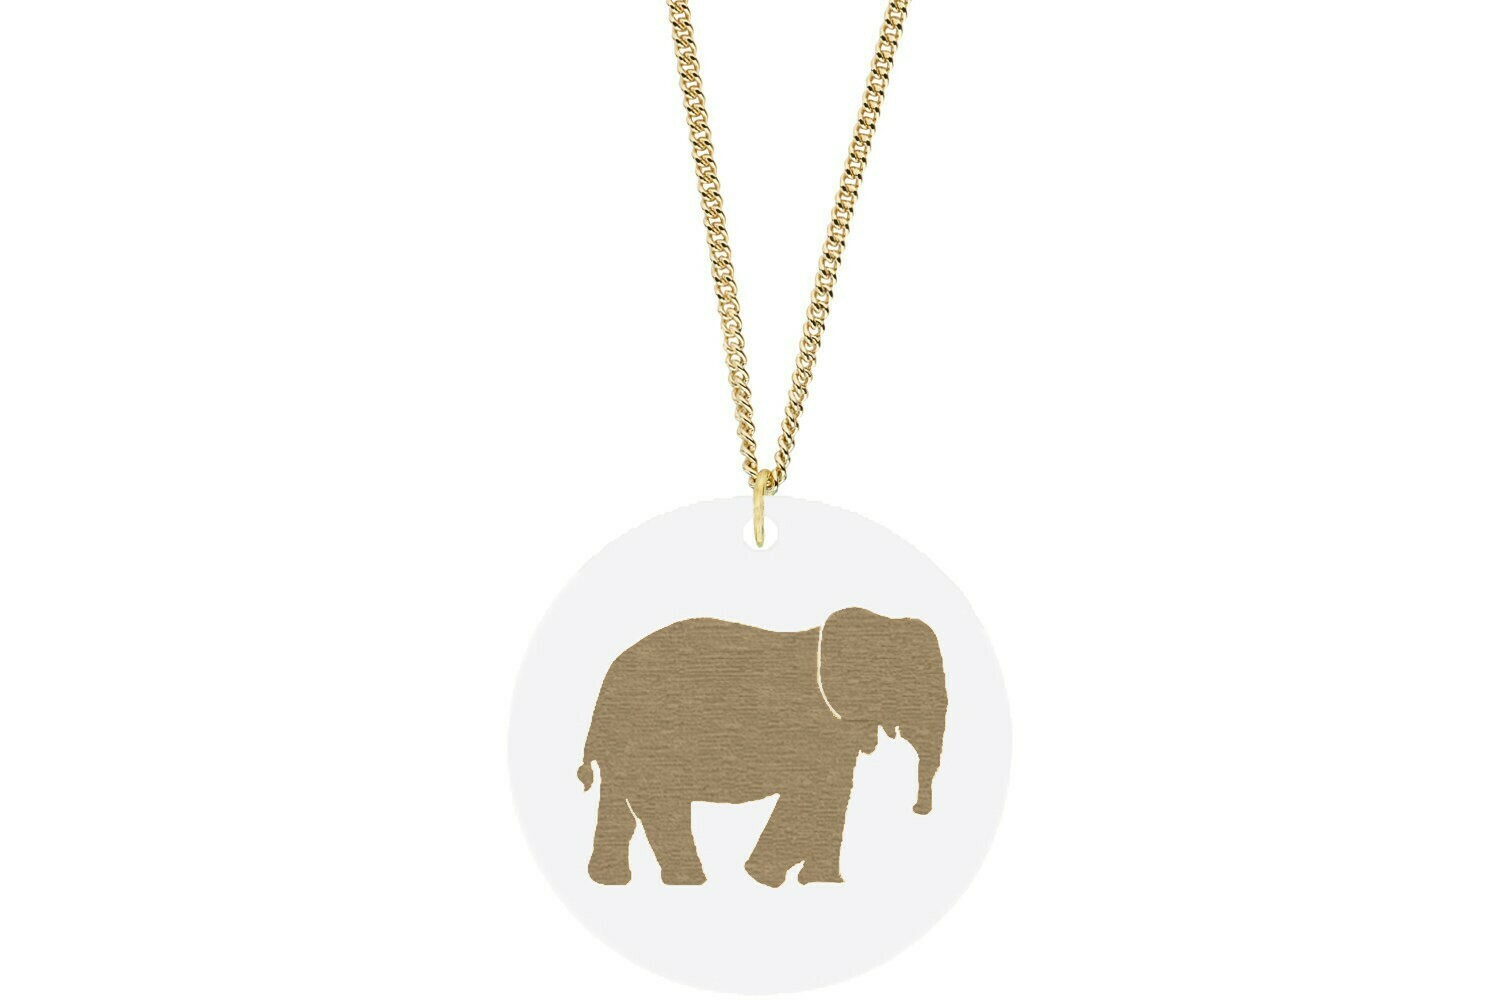 Elephant Pendant Subtle Style Refined with Paint on Chain Necklace